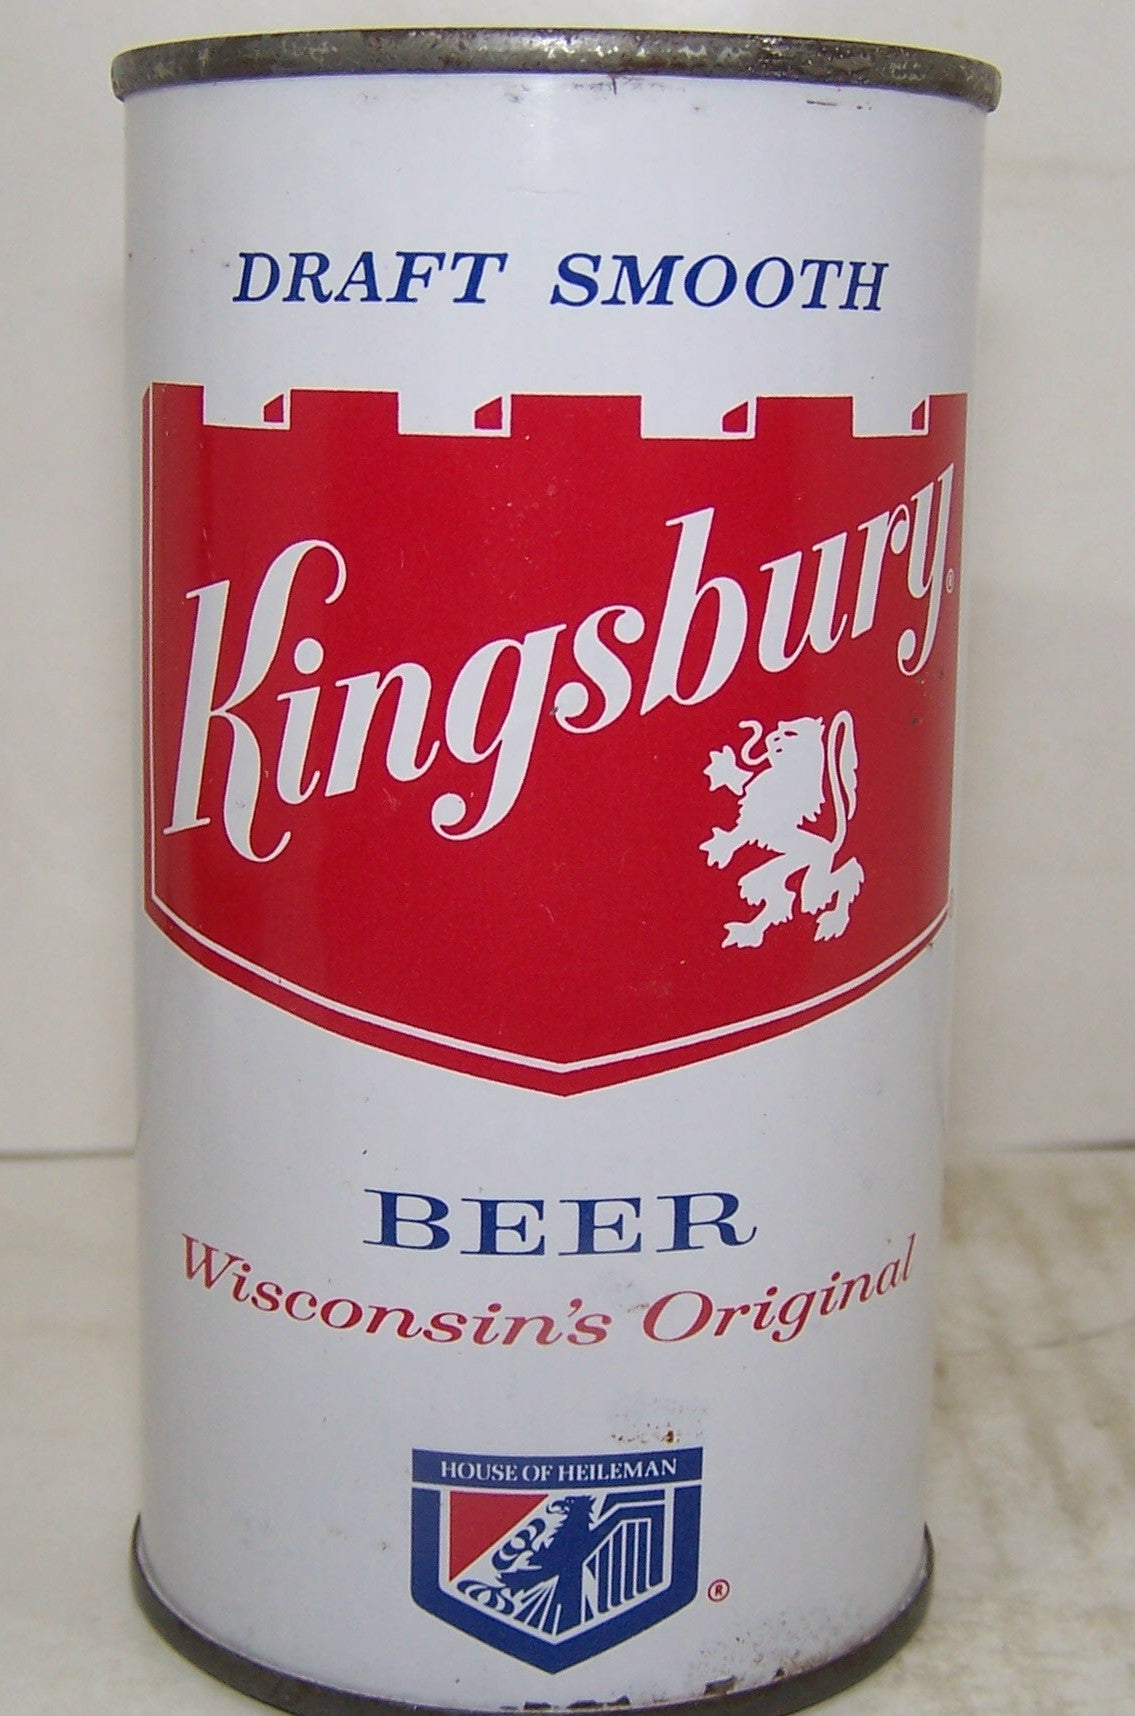 Kingsbury Beer, USBC 88-11, Grade 1 sold